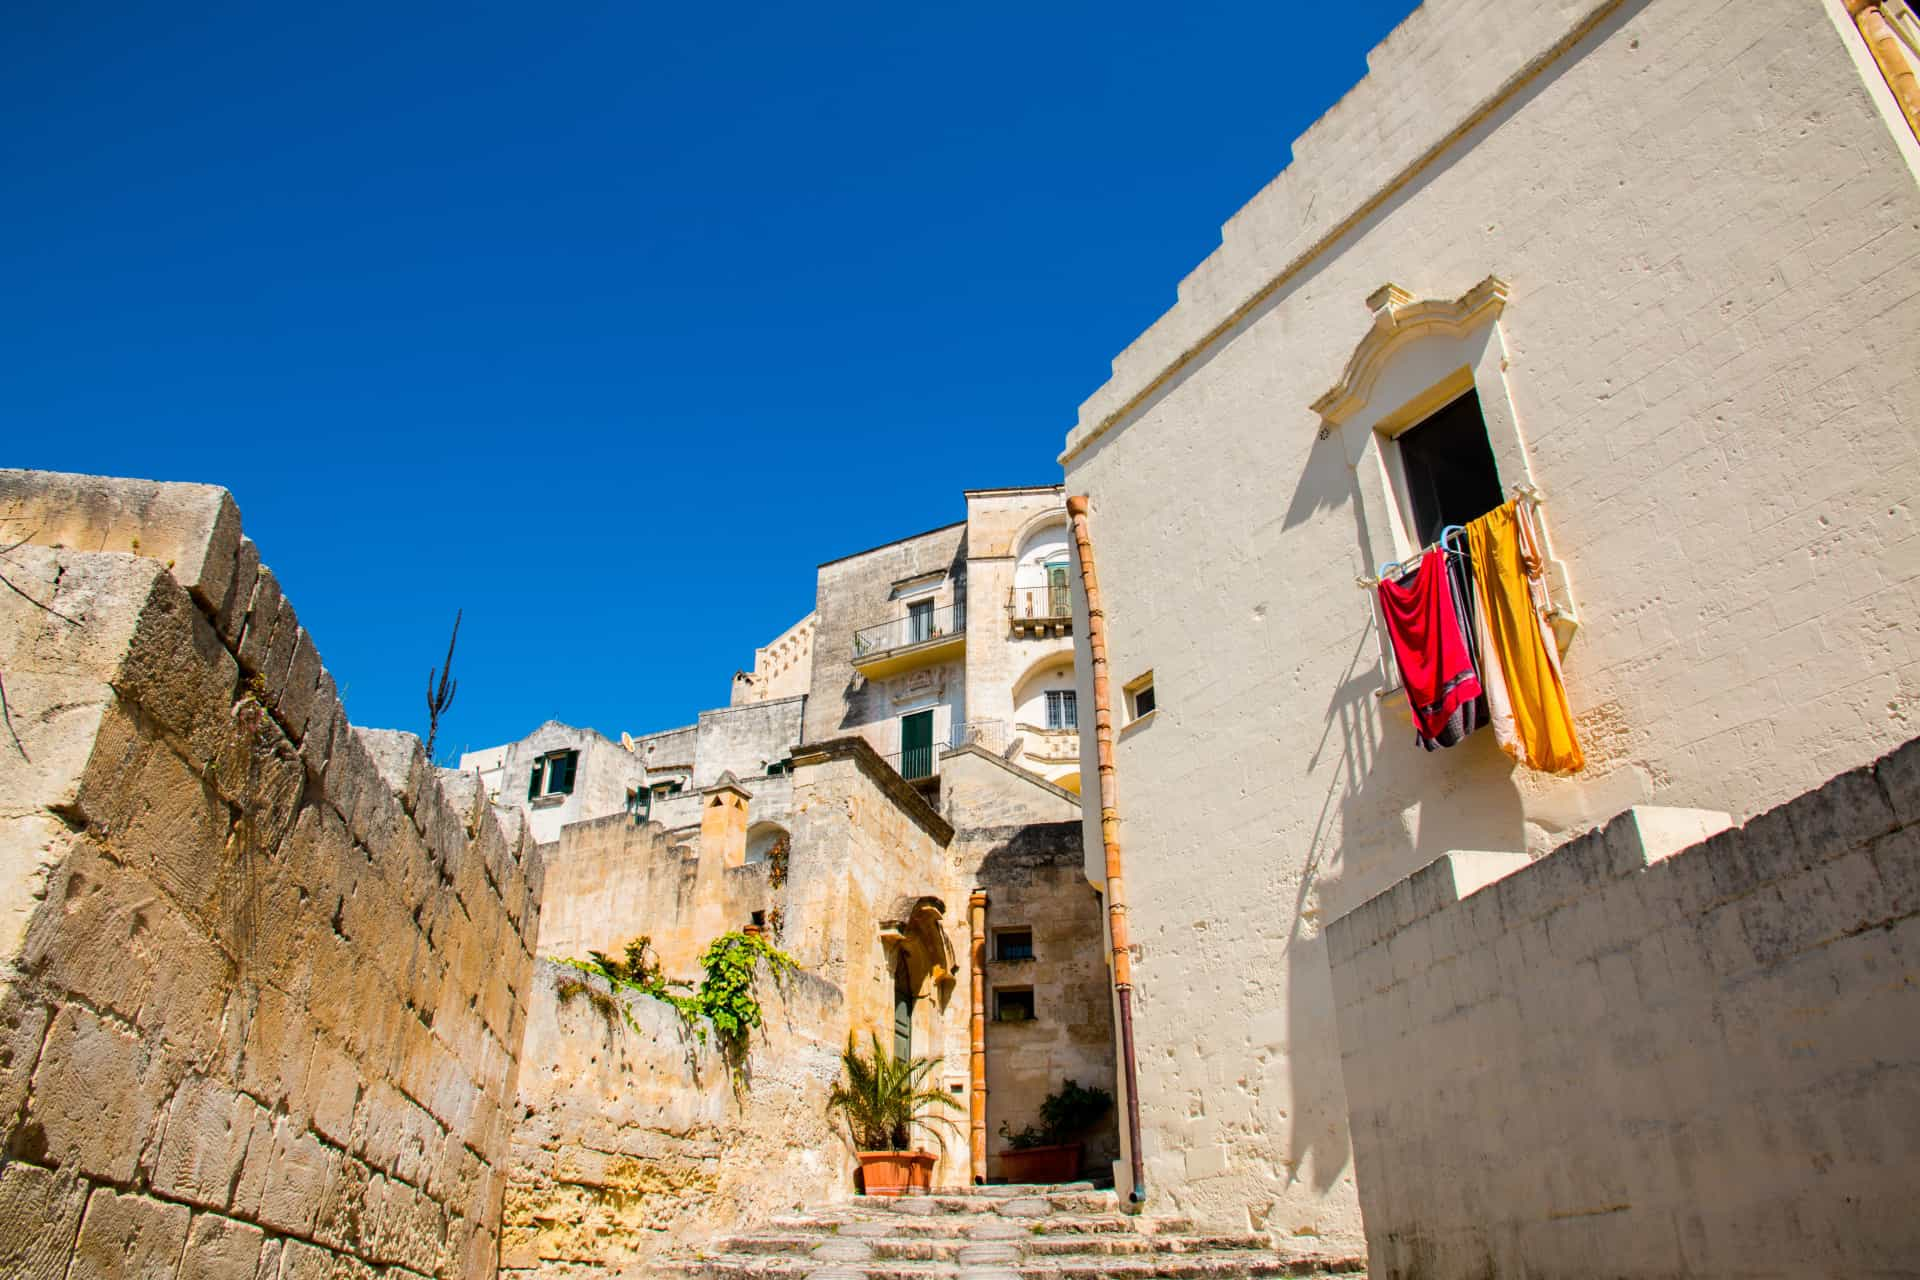 Italy's Matera is the 2019 European Capital of Culture